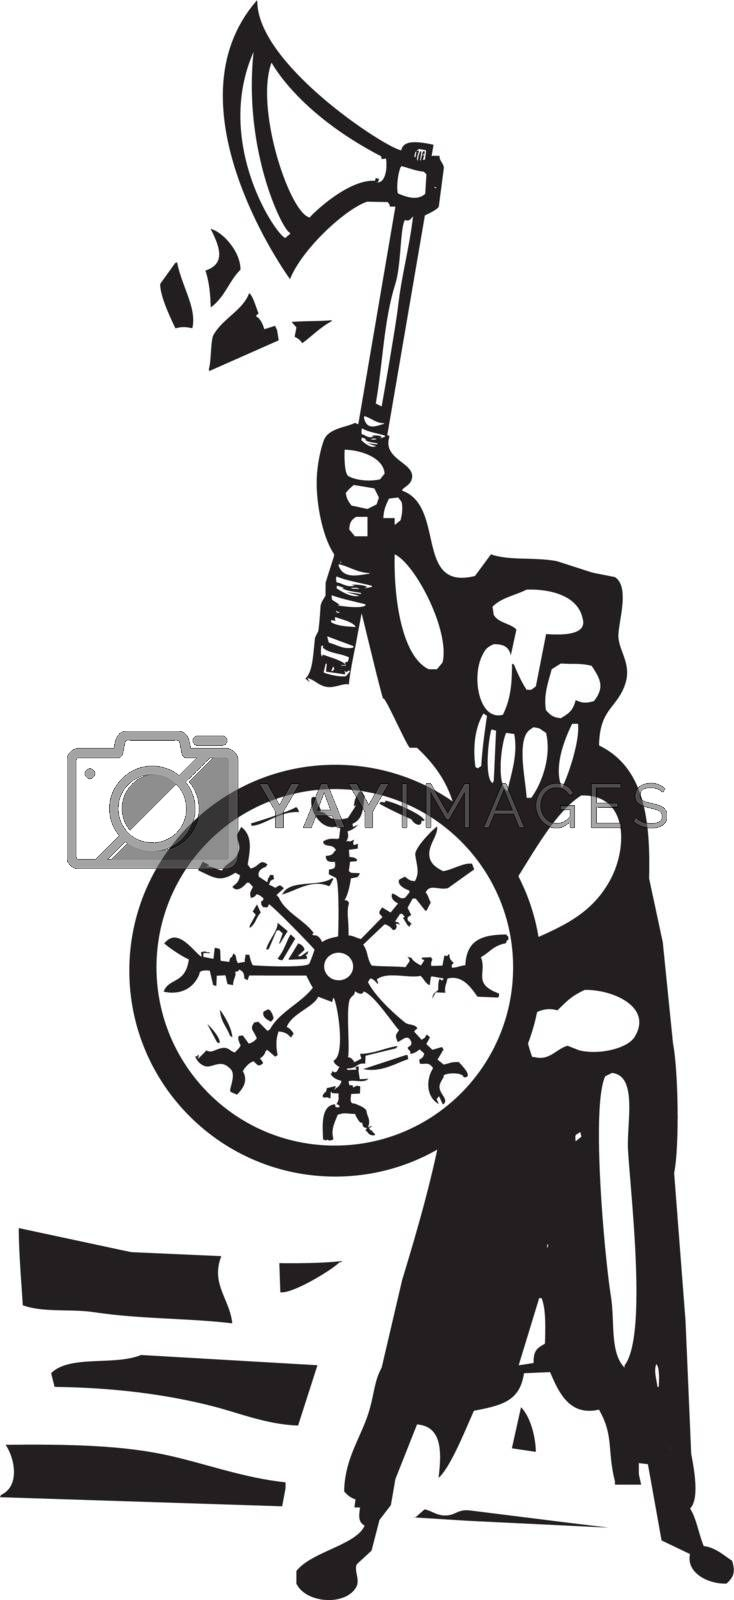 Woodcut style image of a Viking Warrior with a shield and ax.